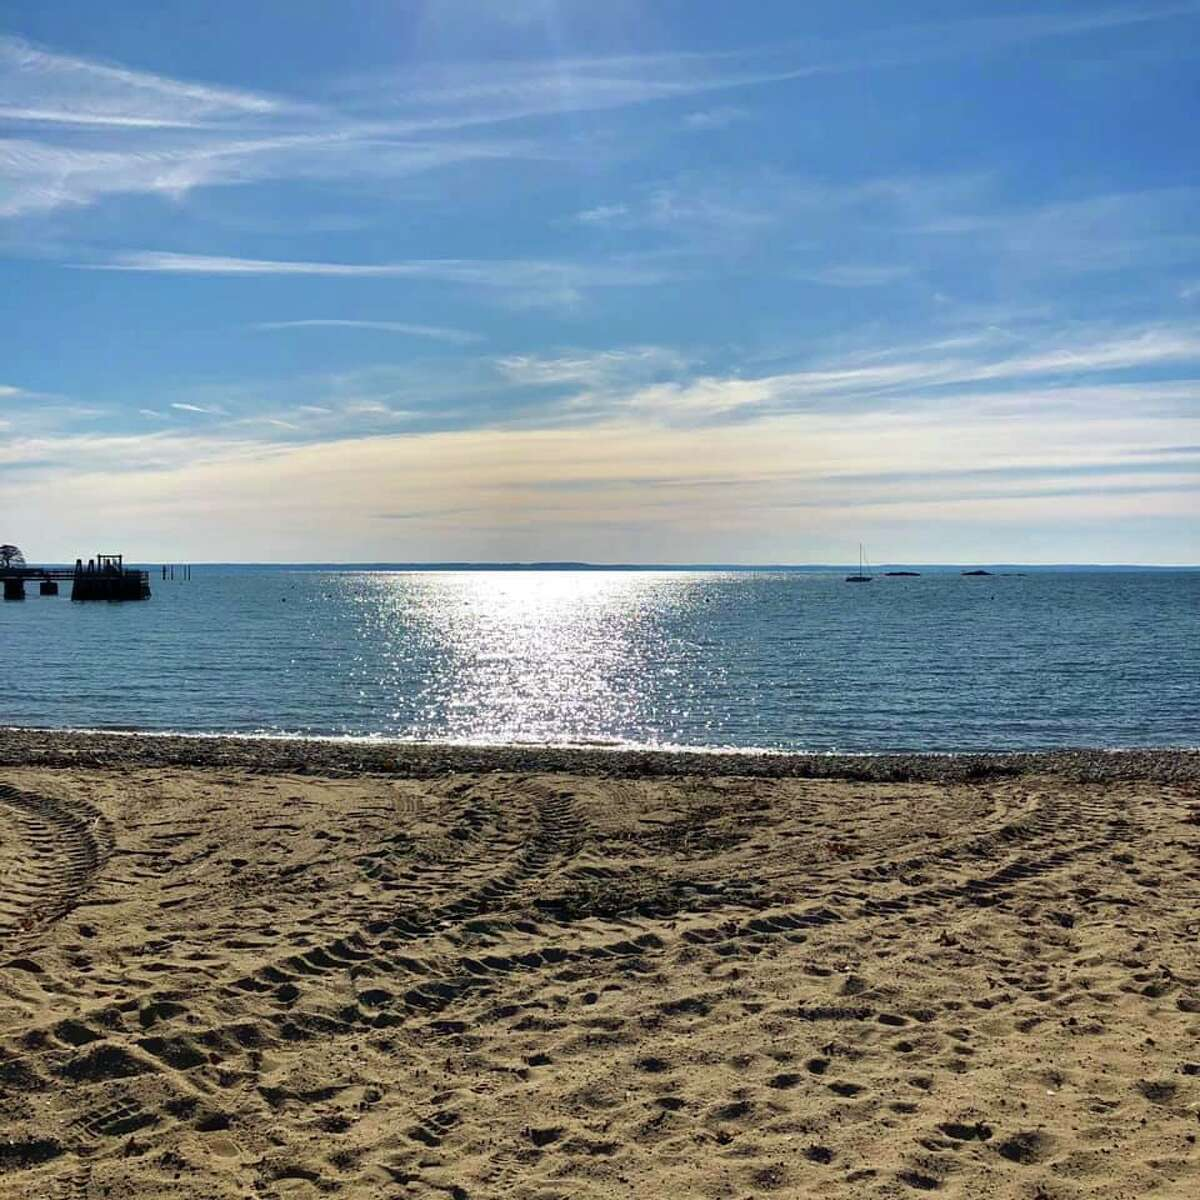 Darien resident Will Lewis caught this view on a run at Pear Tree Point Beach. Keep it looking this clean by following the carry-in, carry-out trash policy in place.